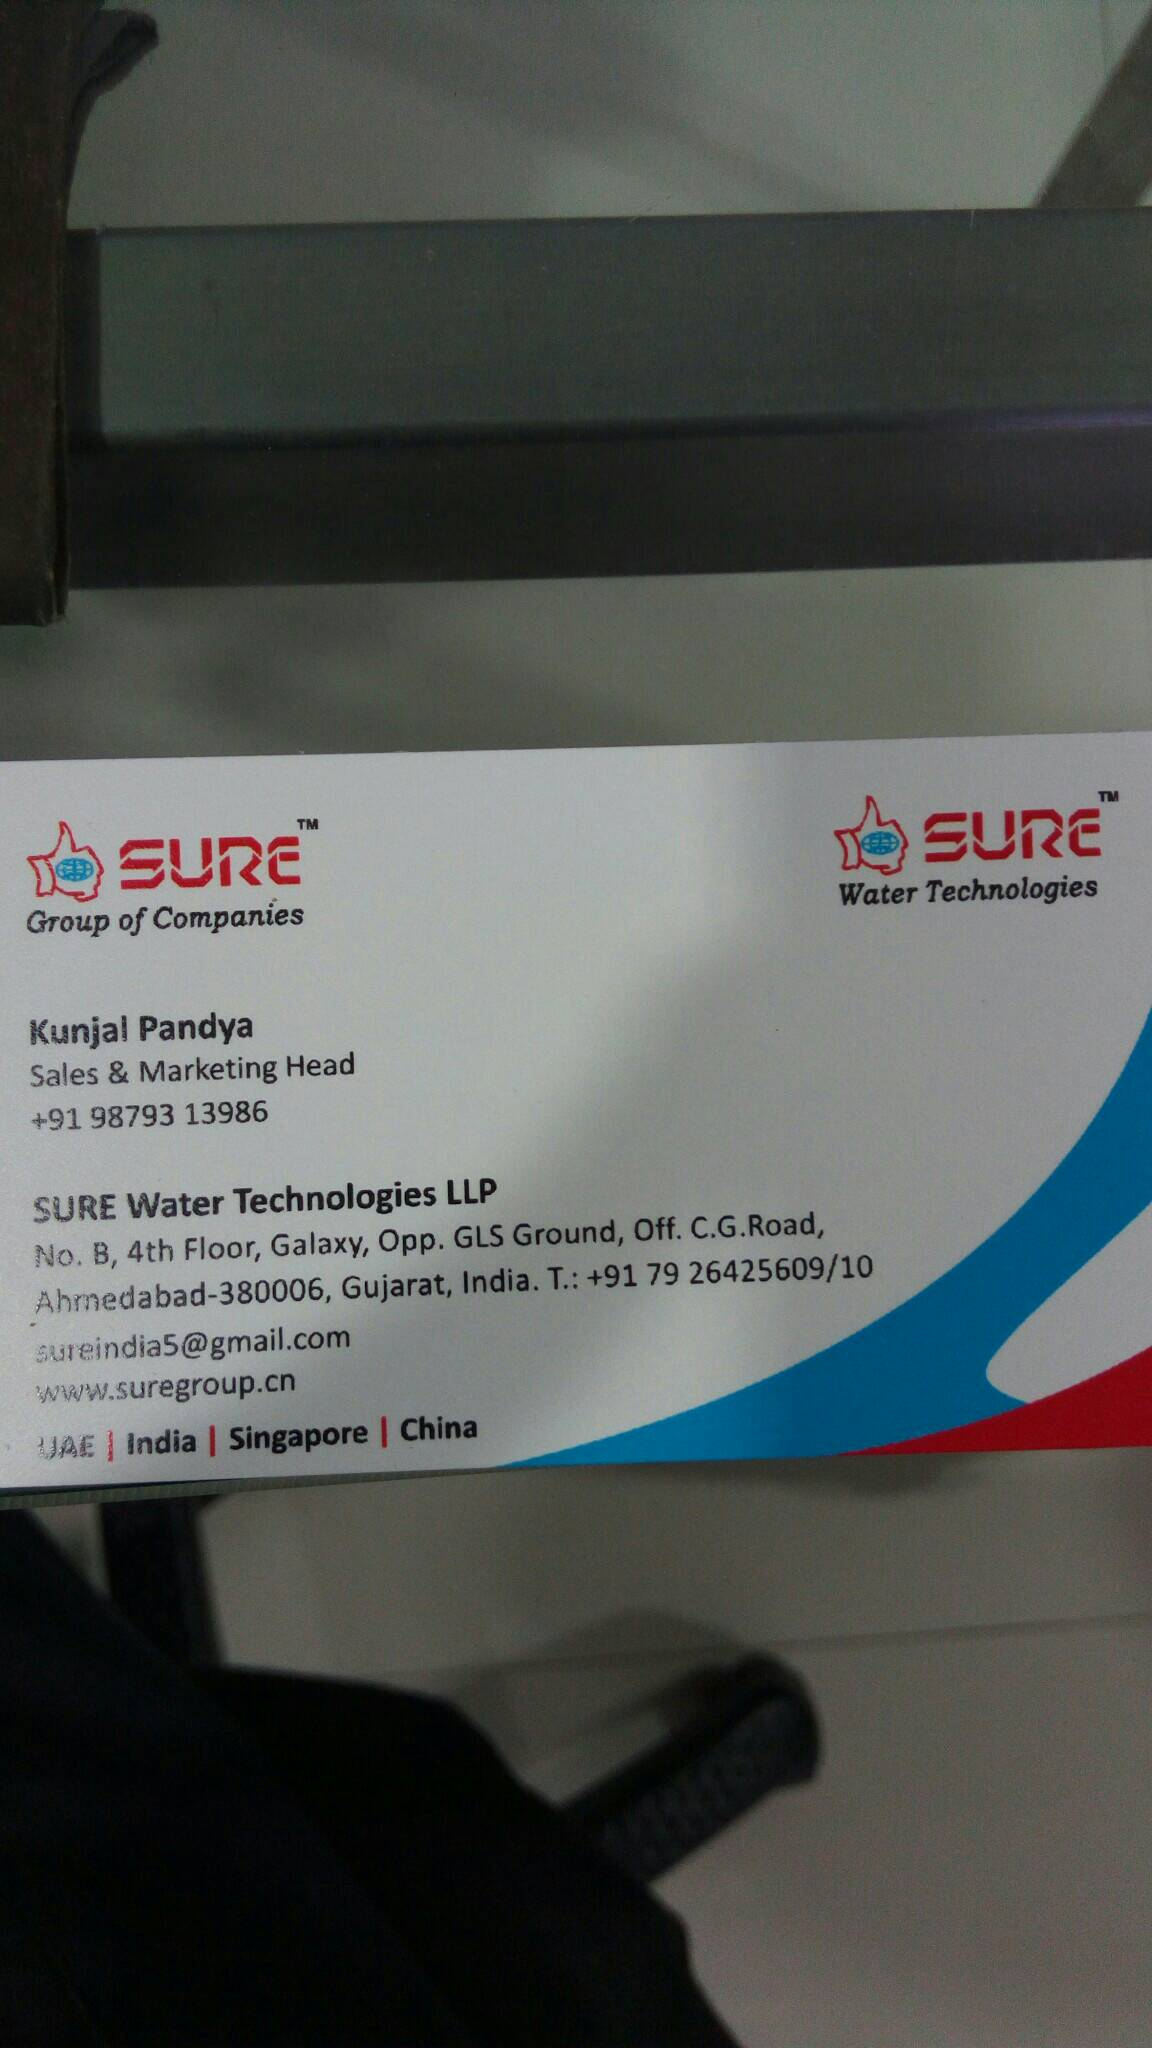 Sure Water Technologies